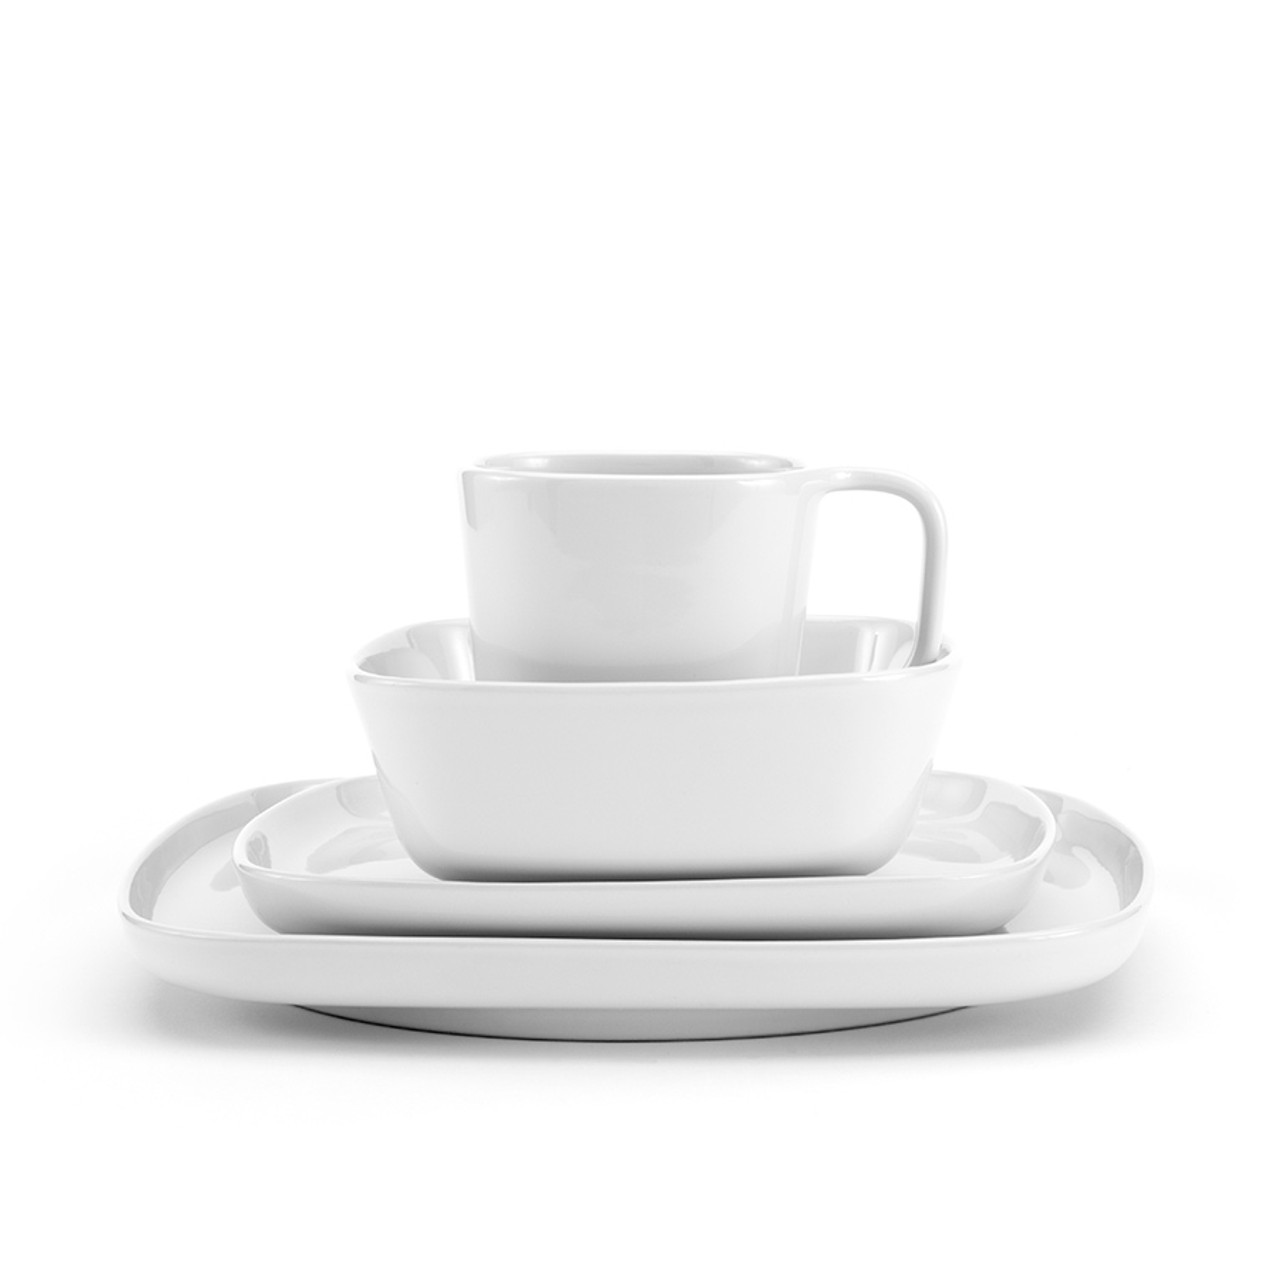 Karo - White Dinnerware 16 piece set